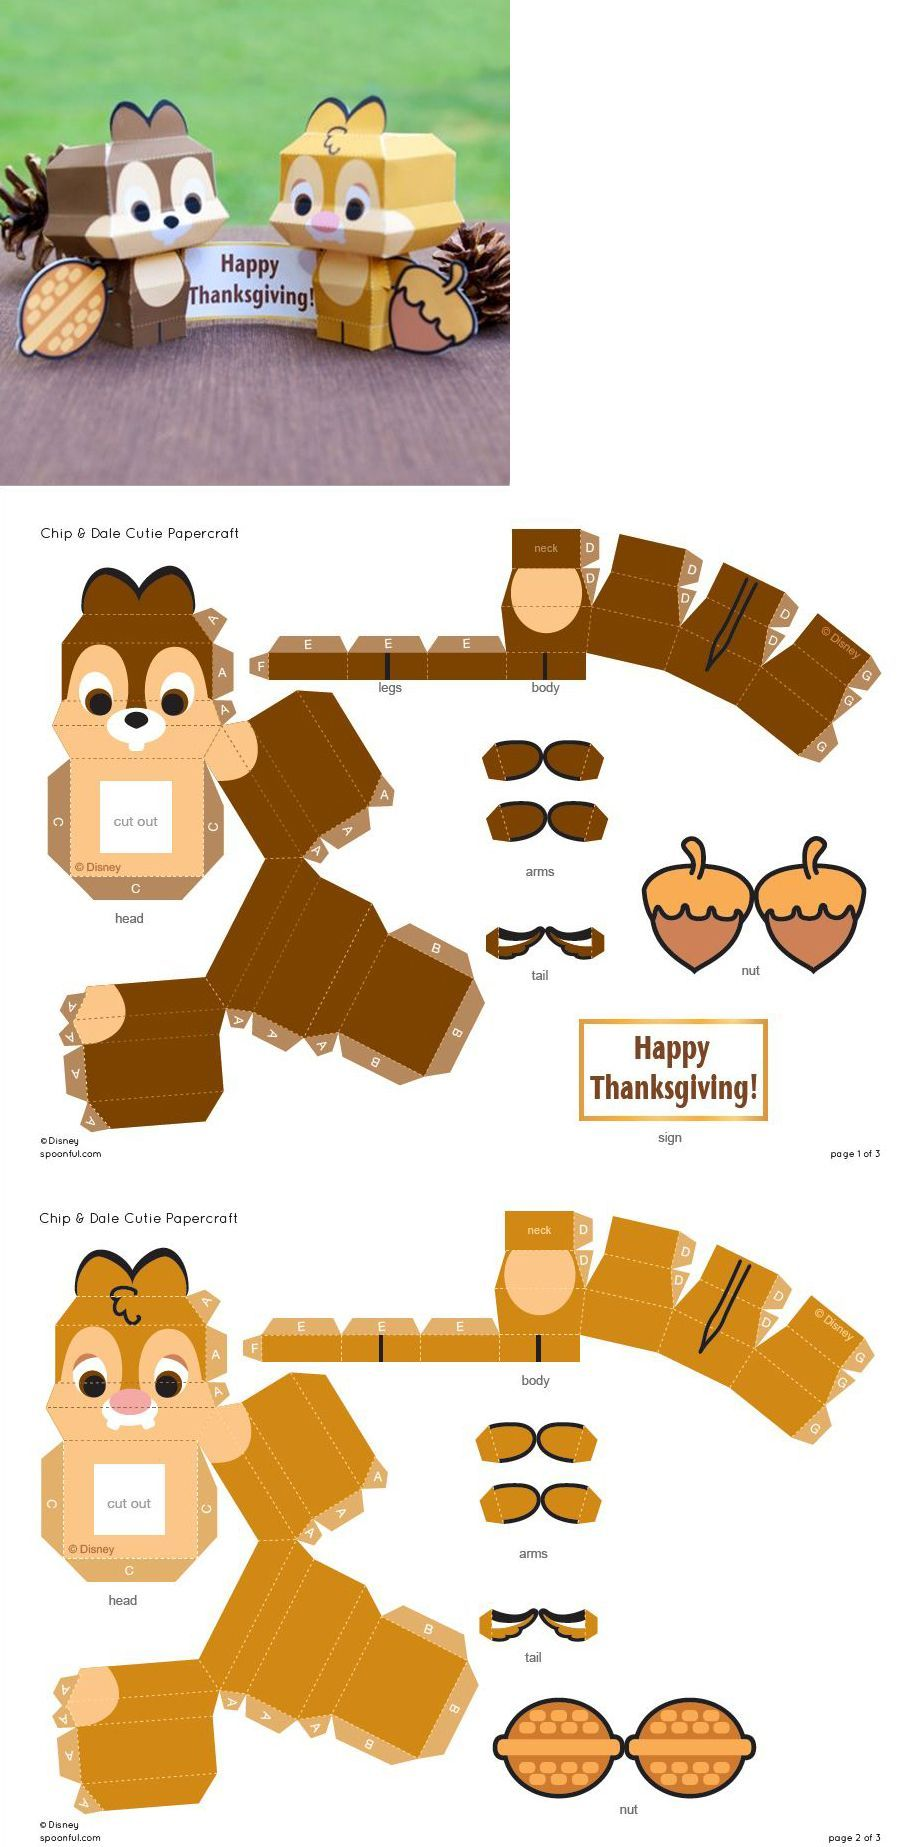 Playing And Crafting Chip And Dale Cute Papercraft ต กตากระดาษ